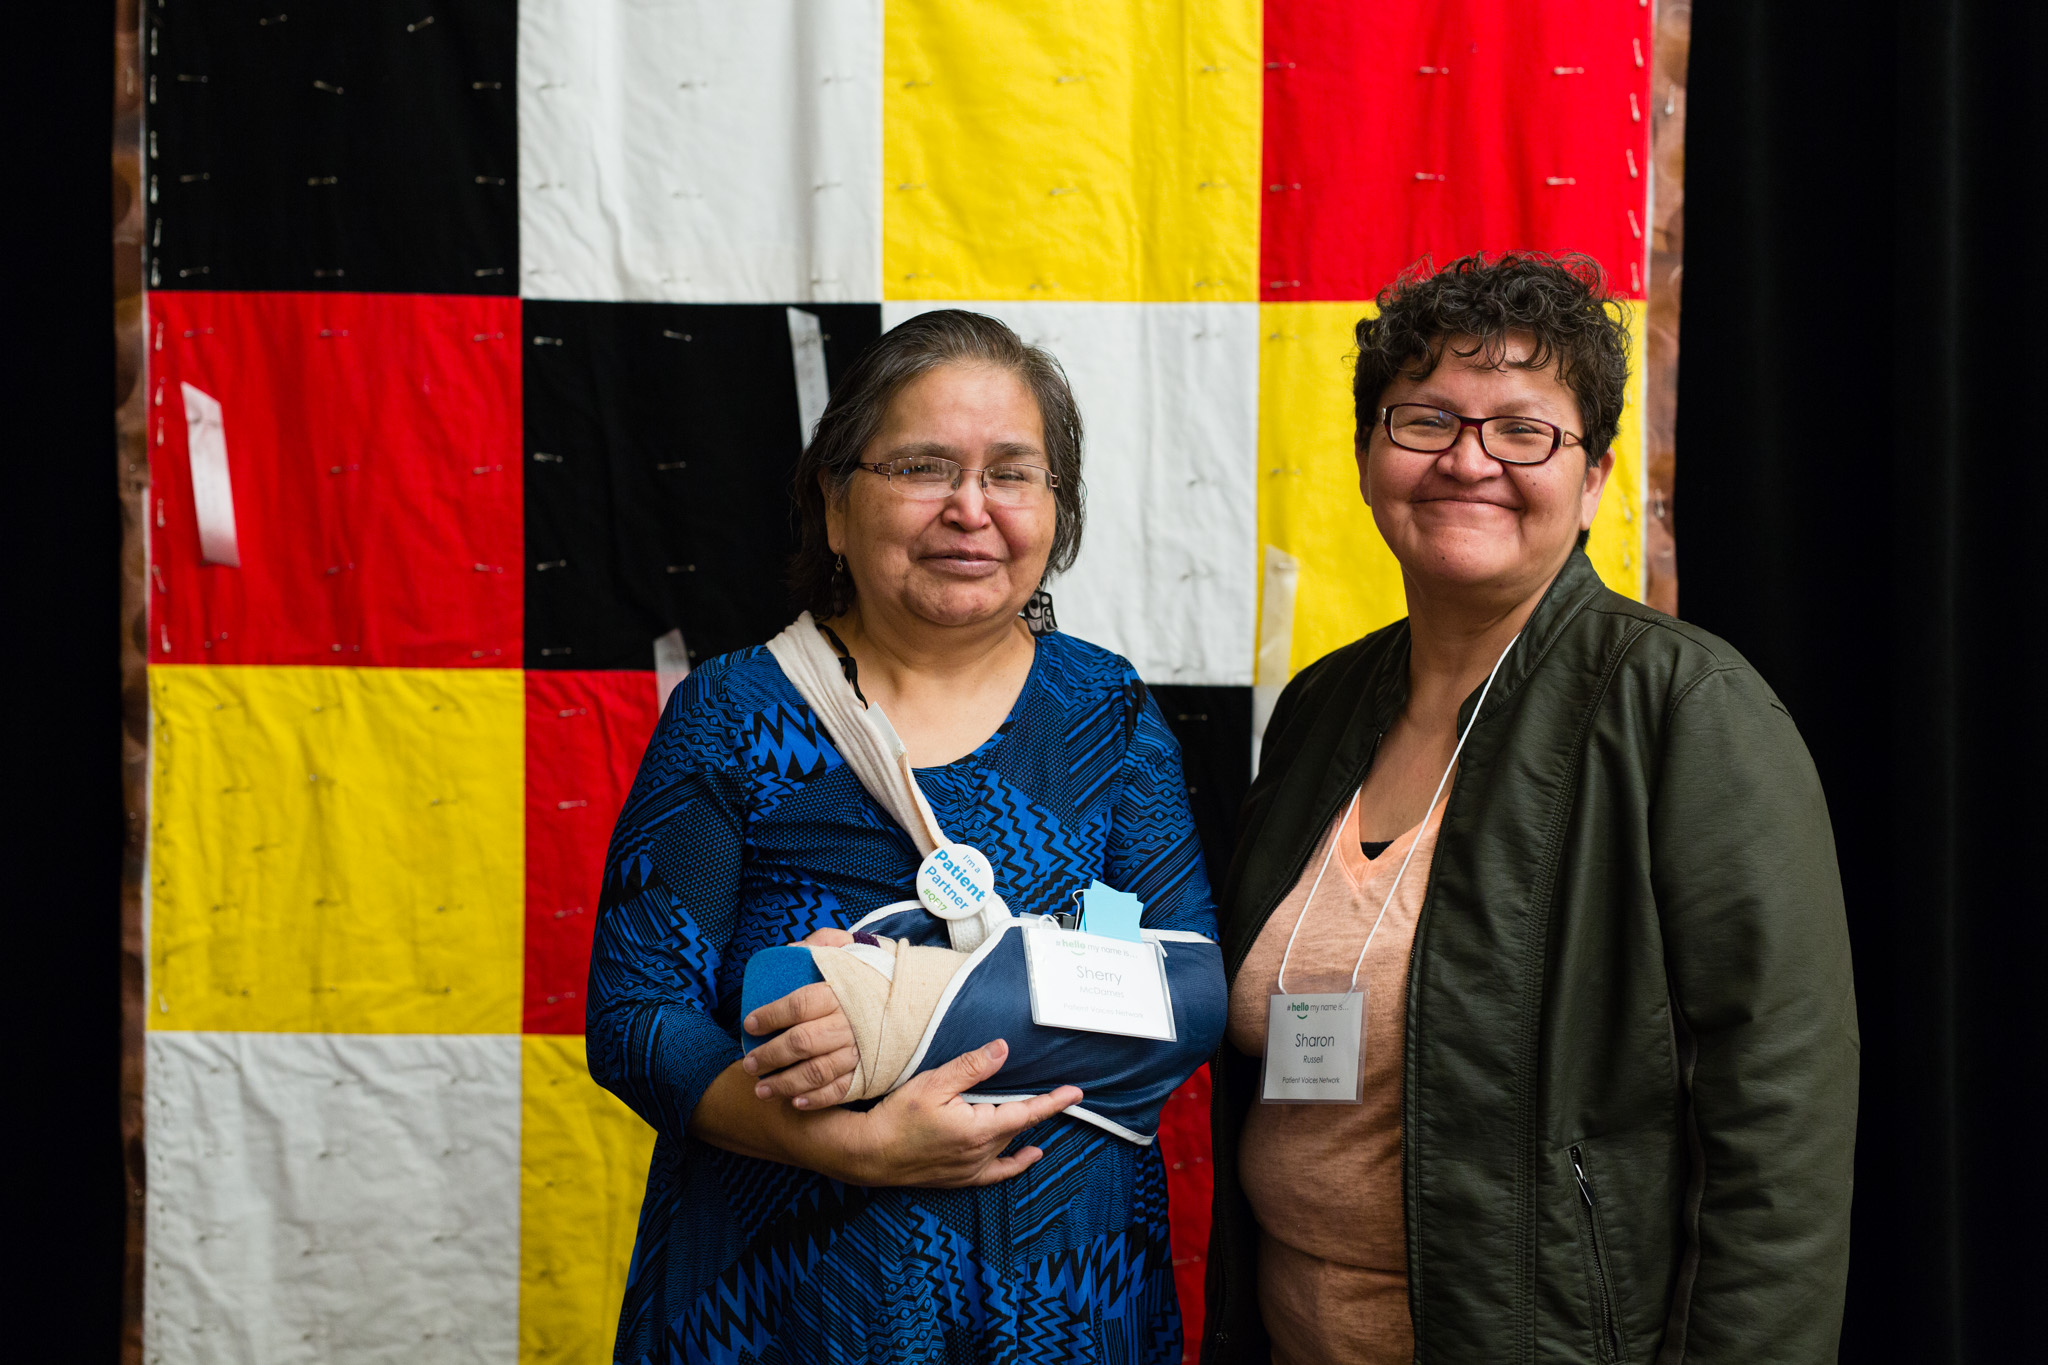 Two women pose for a photo at the BC Quality Forum.